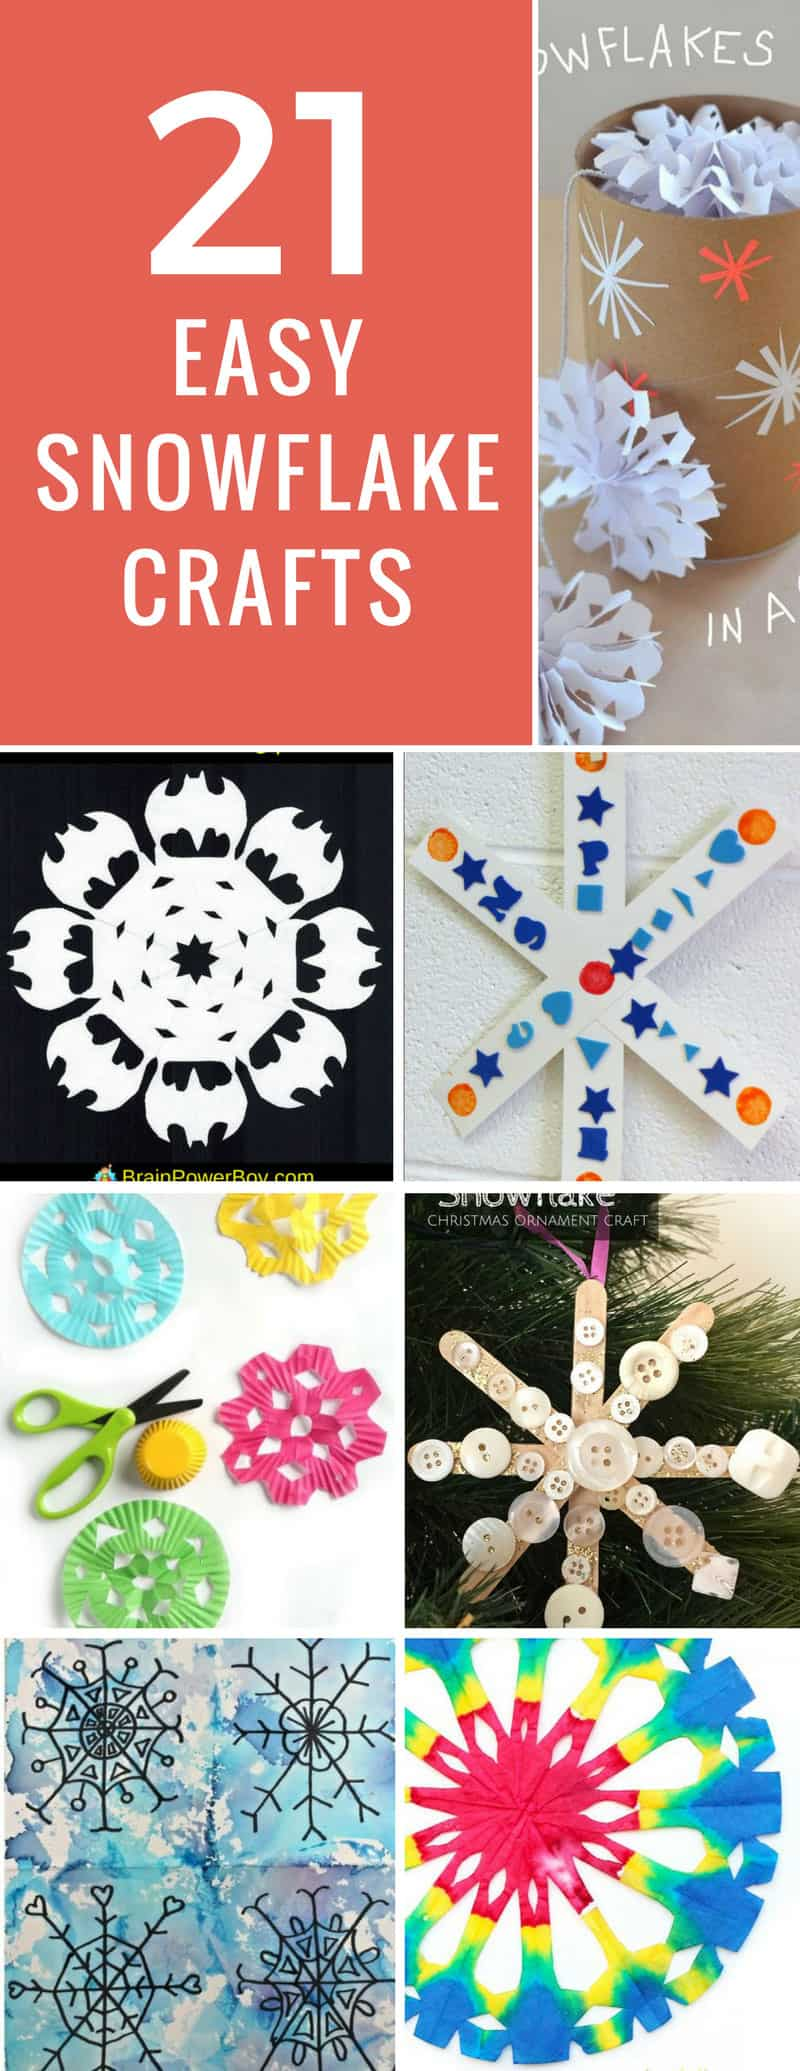 The kids will have a blast with these snowflake crafts! So much fun and easy to make too!